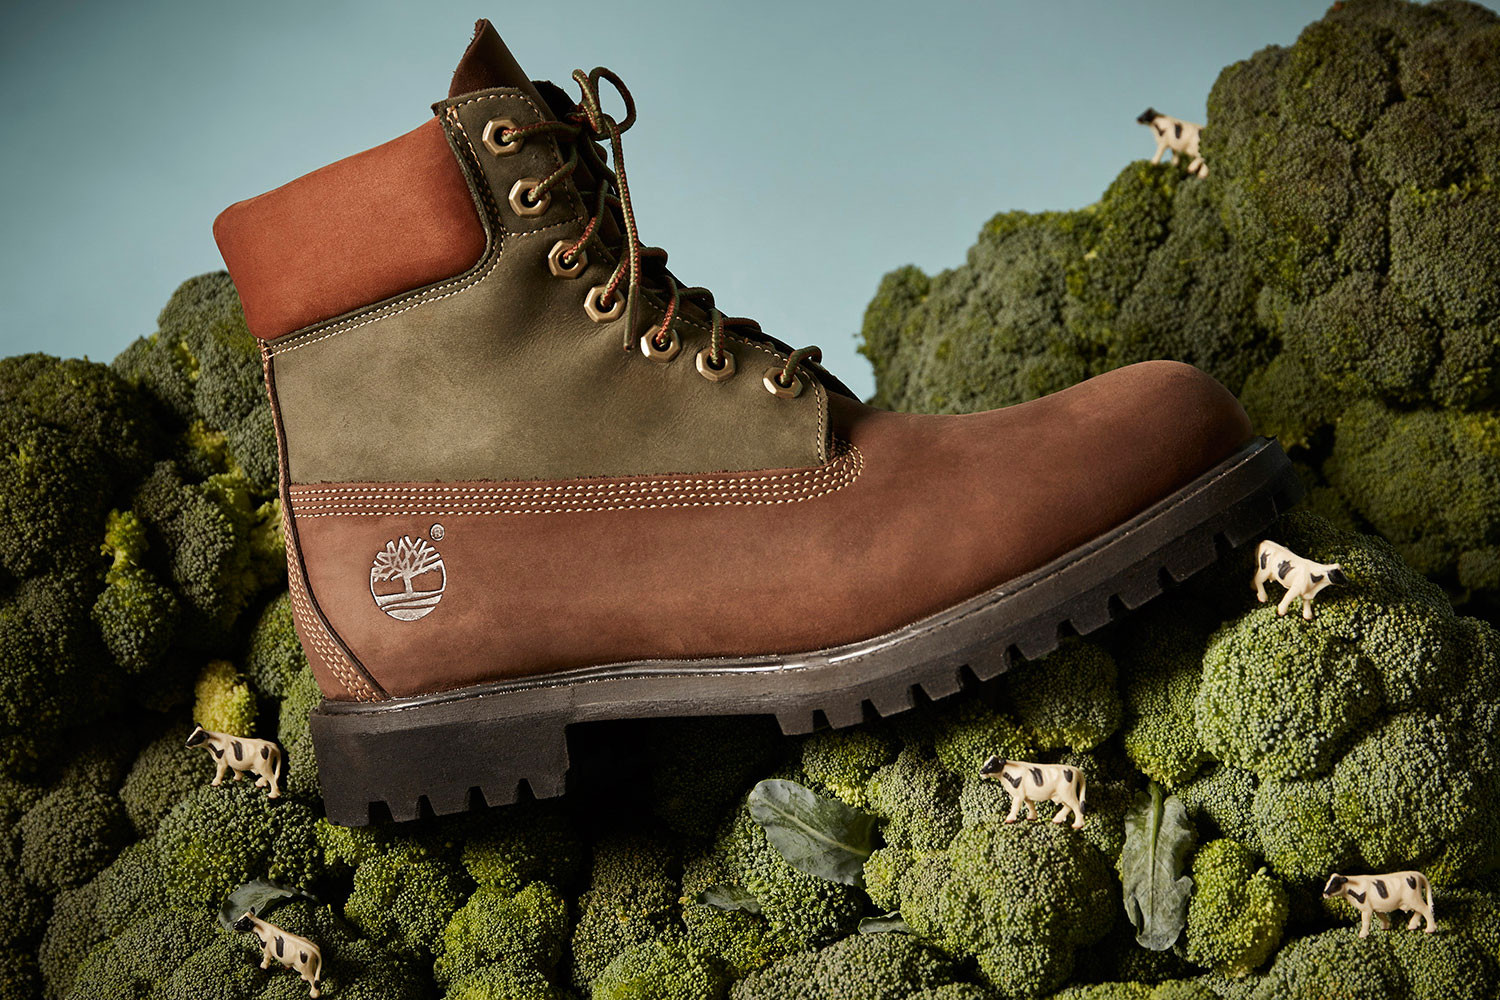 Timberland 6 Inch Beef and Broccoli